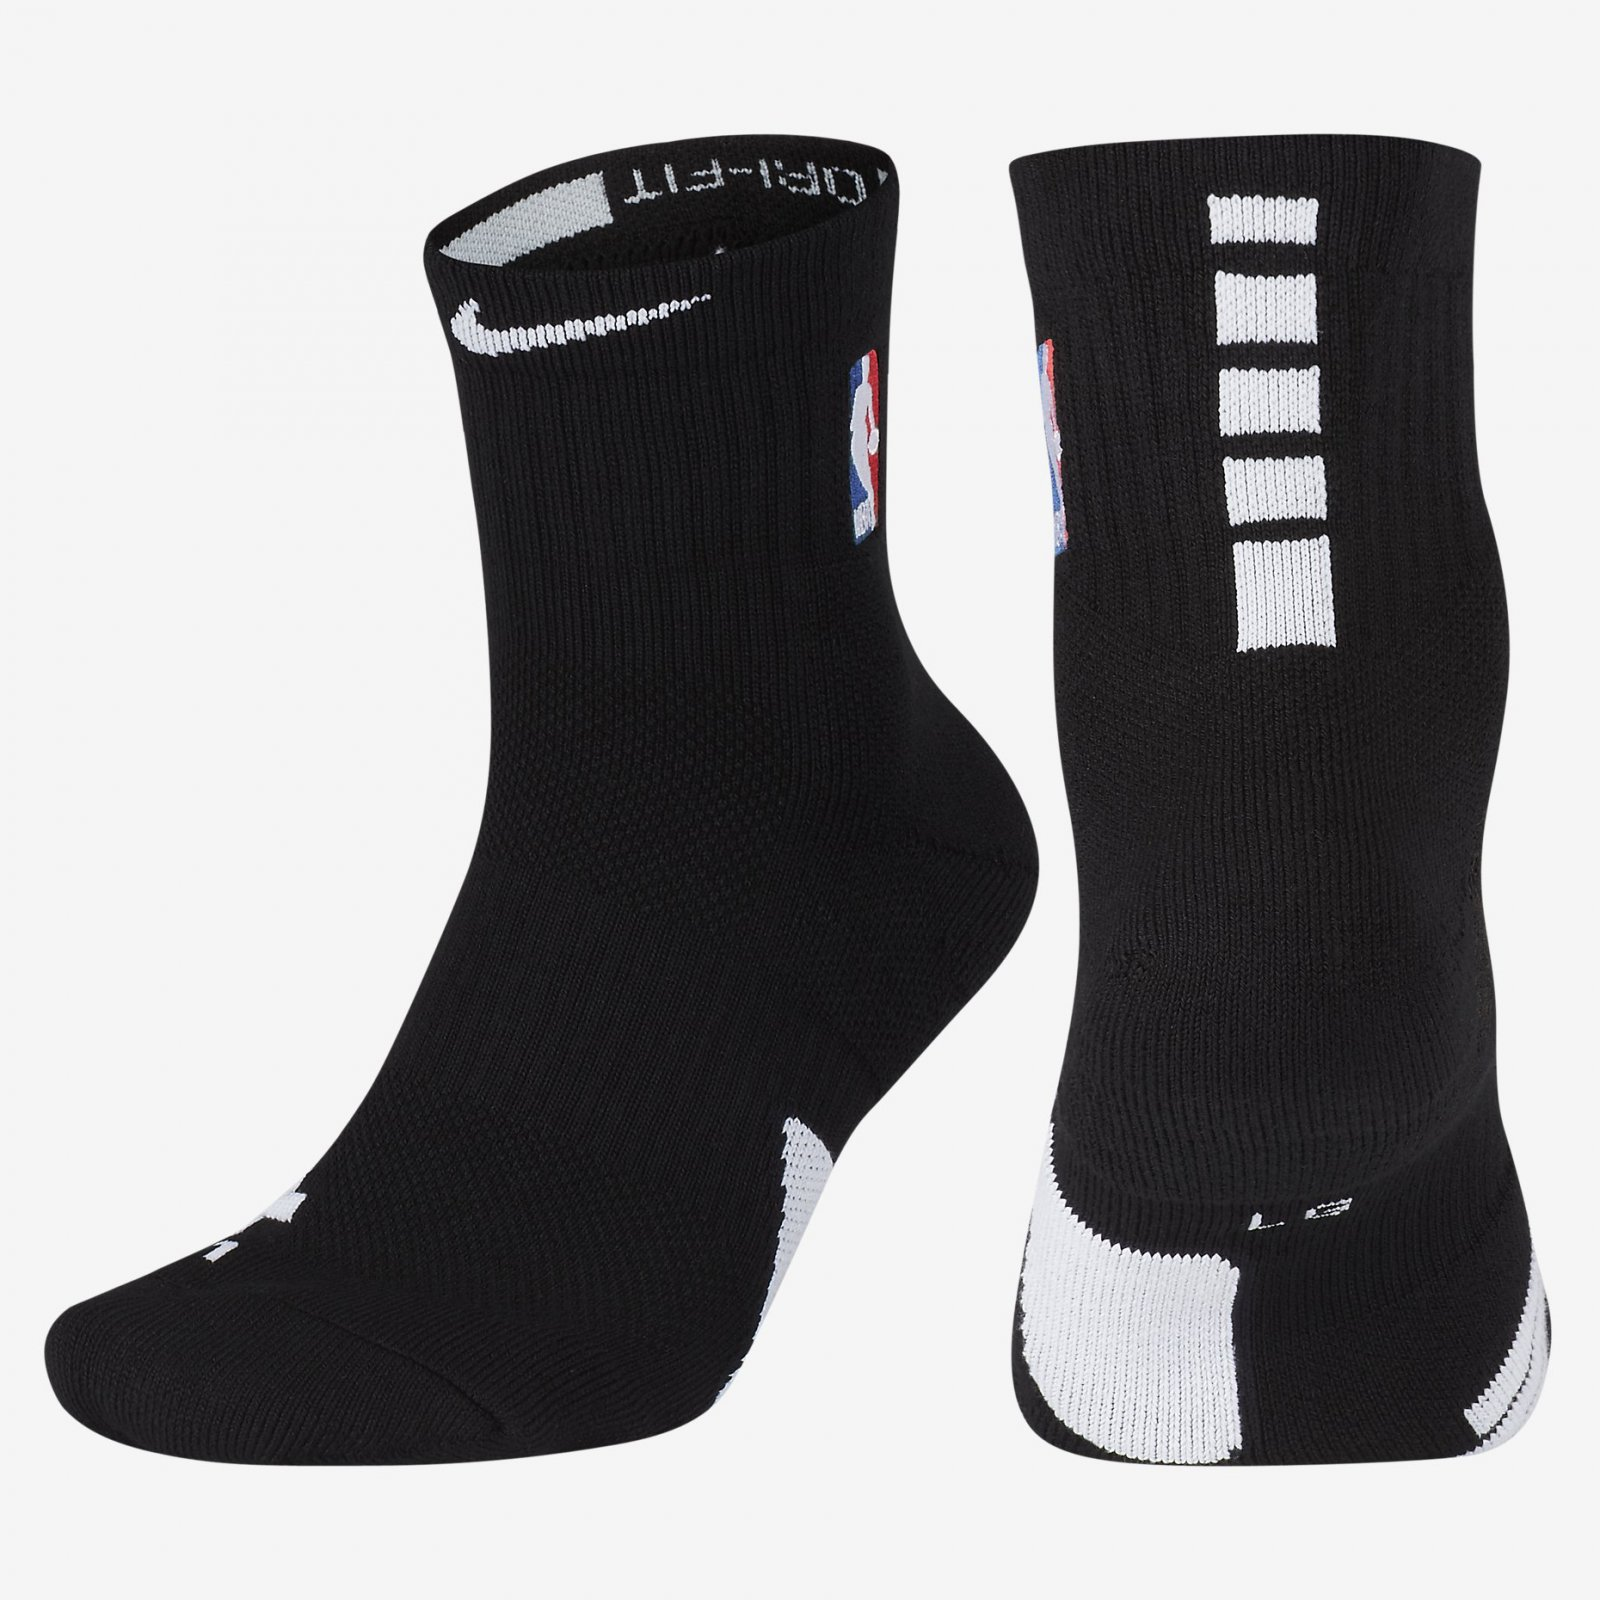 reputable site 86824 9b123 Details about NBA Nike Elite Ankle Cushioned Basketball Mid Crew Black  White Socks SX7588-010